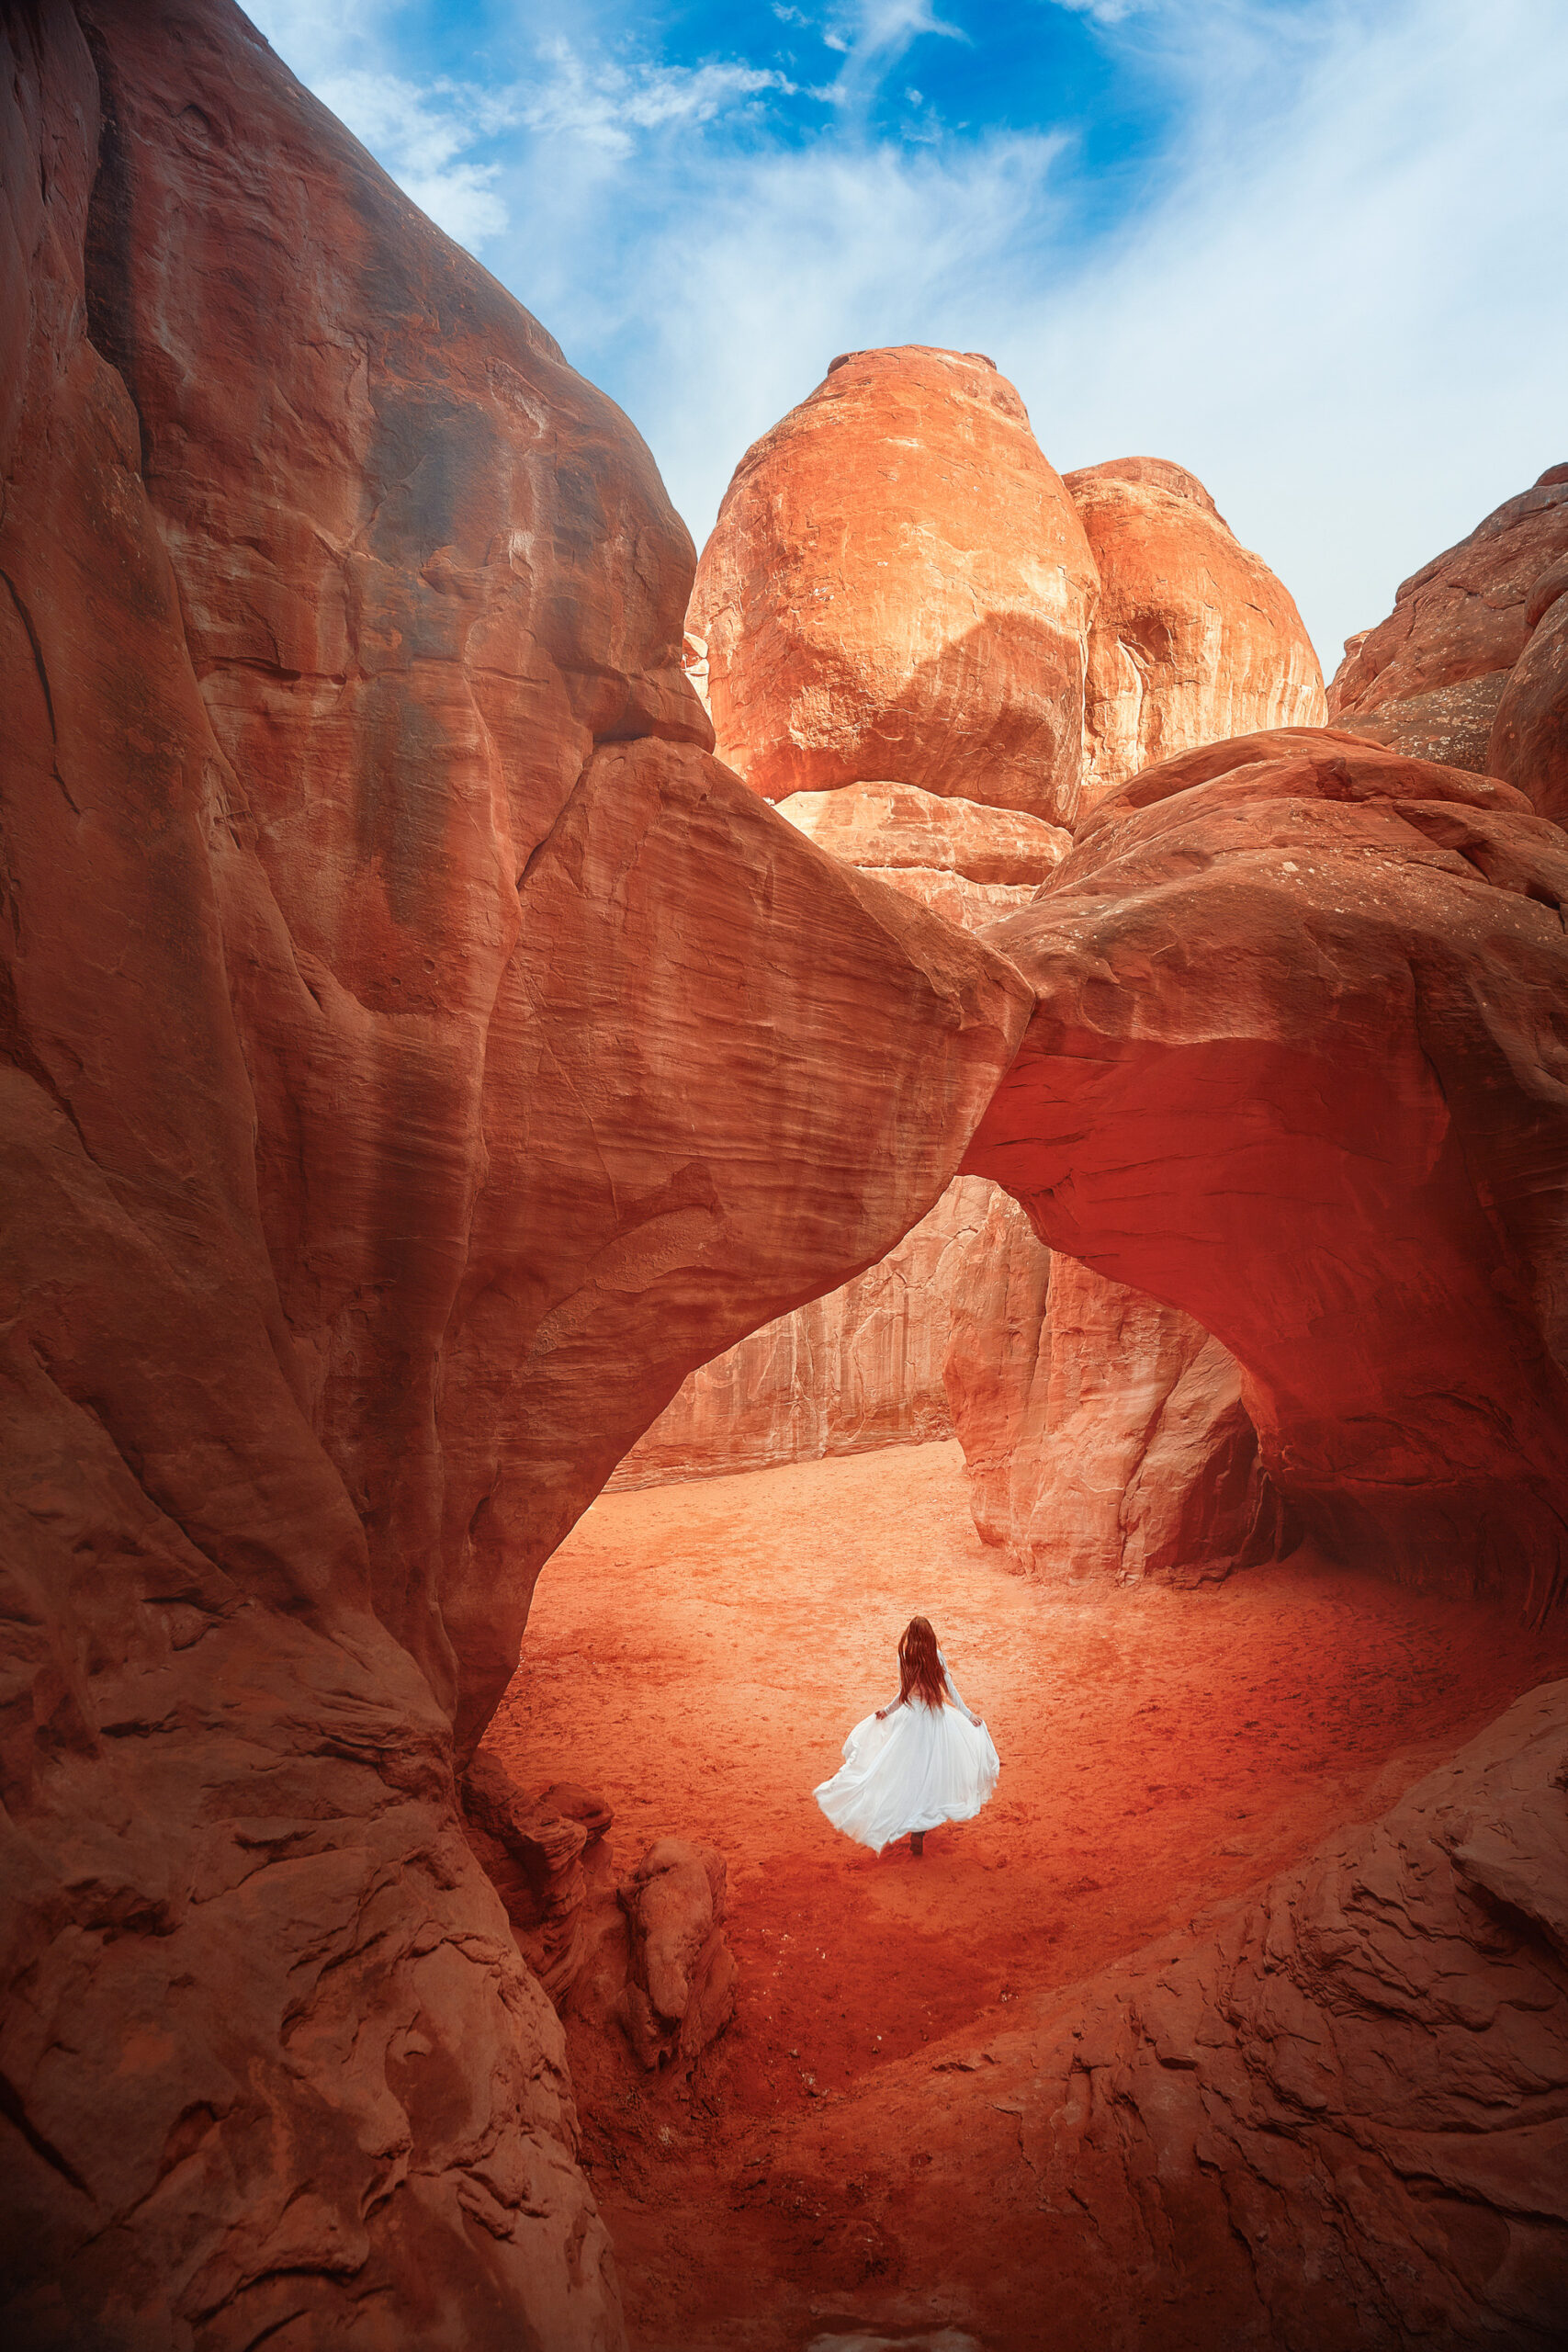 A woman in a white dress with long hair running under a red sandstone arch. The area is nothing but red sandstone rock formations. Its a great Southwest road trip stop.